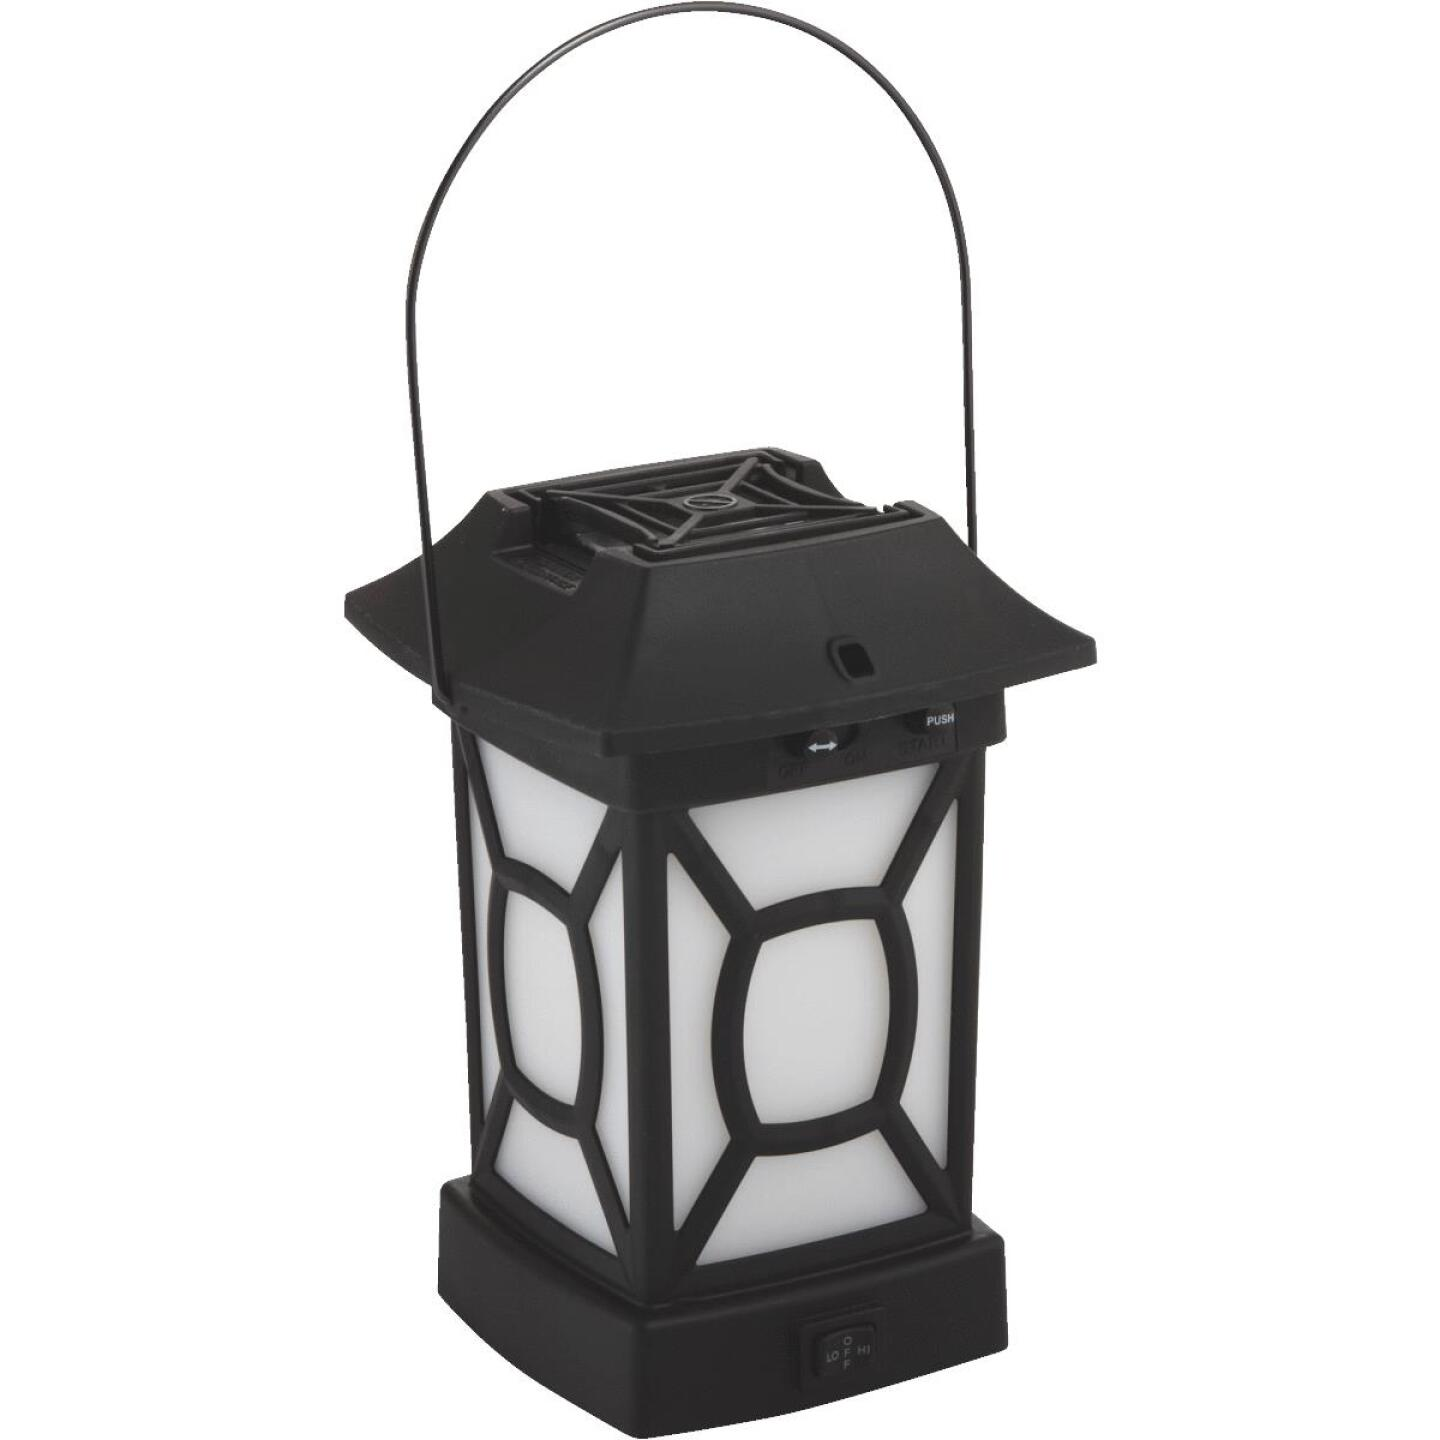 Thermacell 225 Sq. Ft. 12 Hr. Mosquito Repellent Patio Lamp Image 1